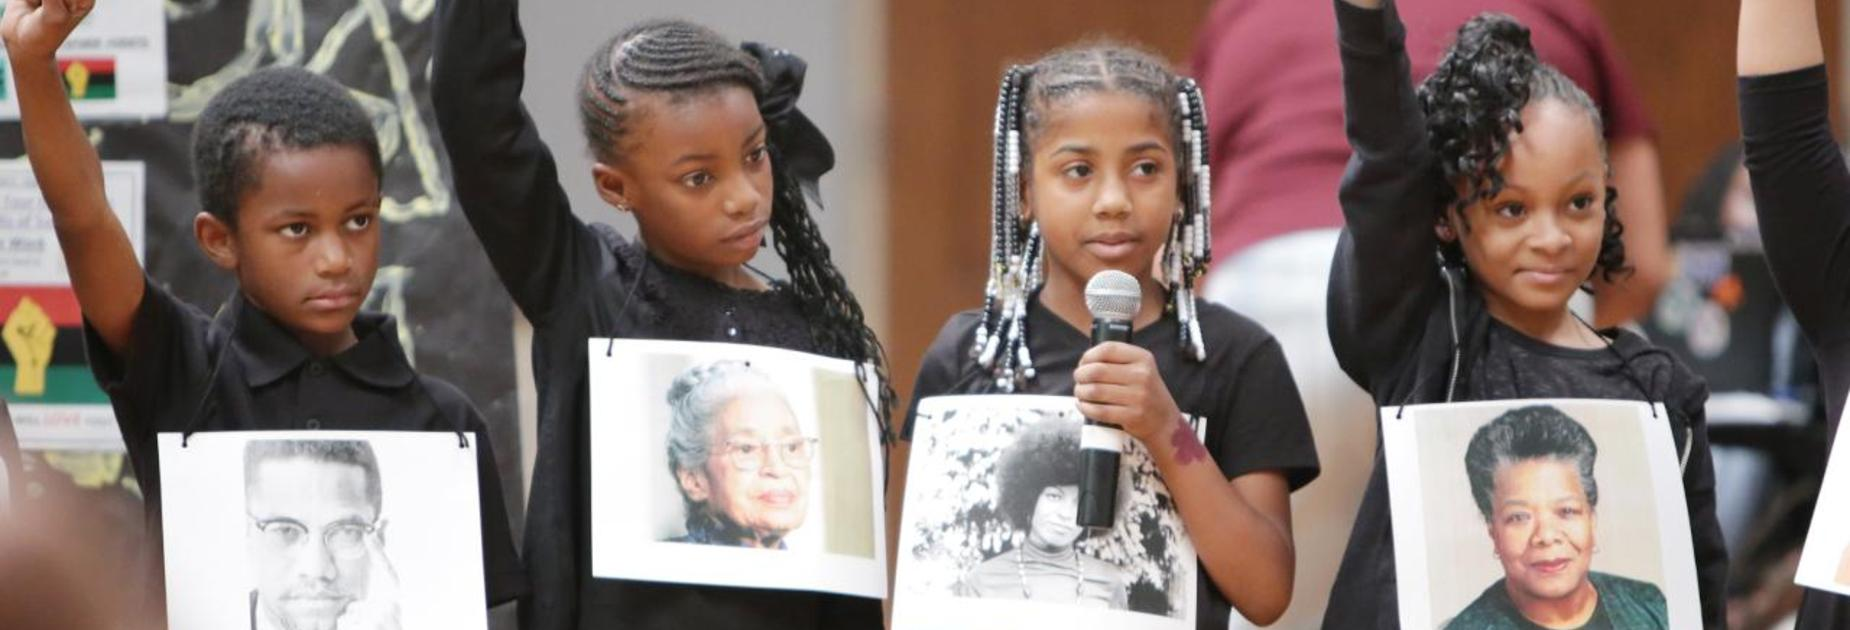 4 KLP students holding pictures of famous Black Americans